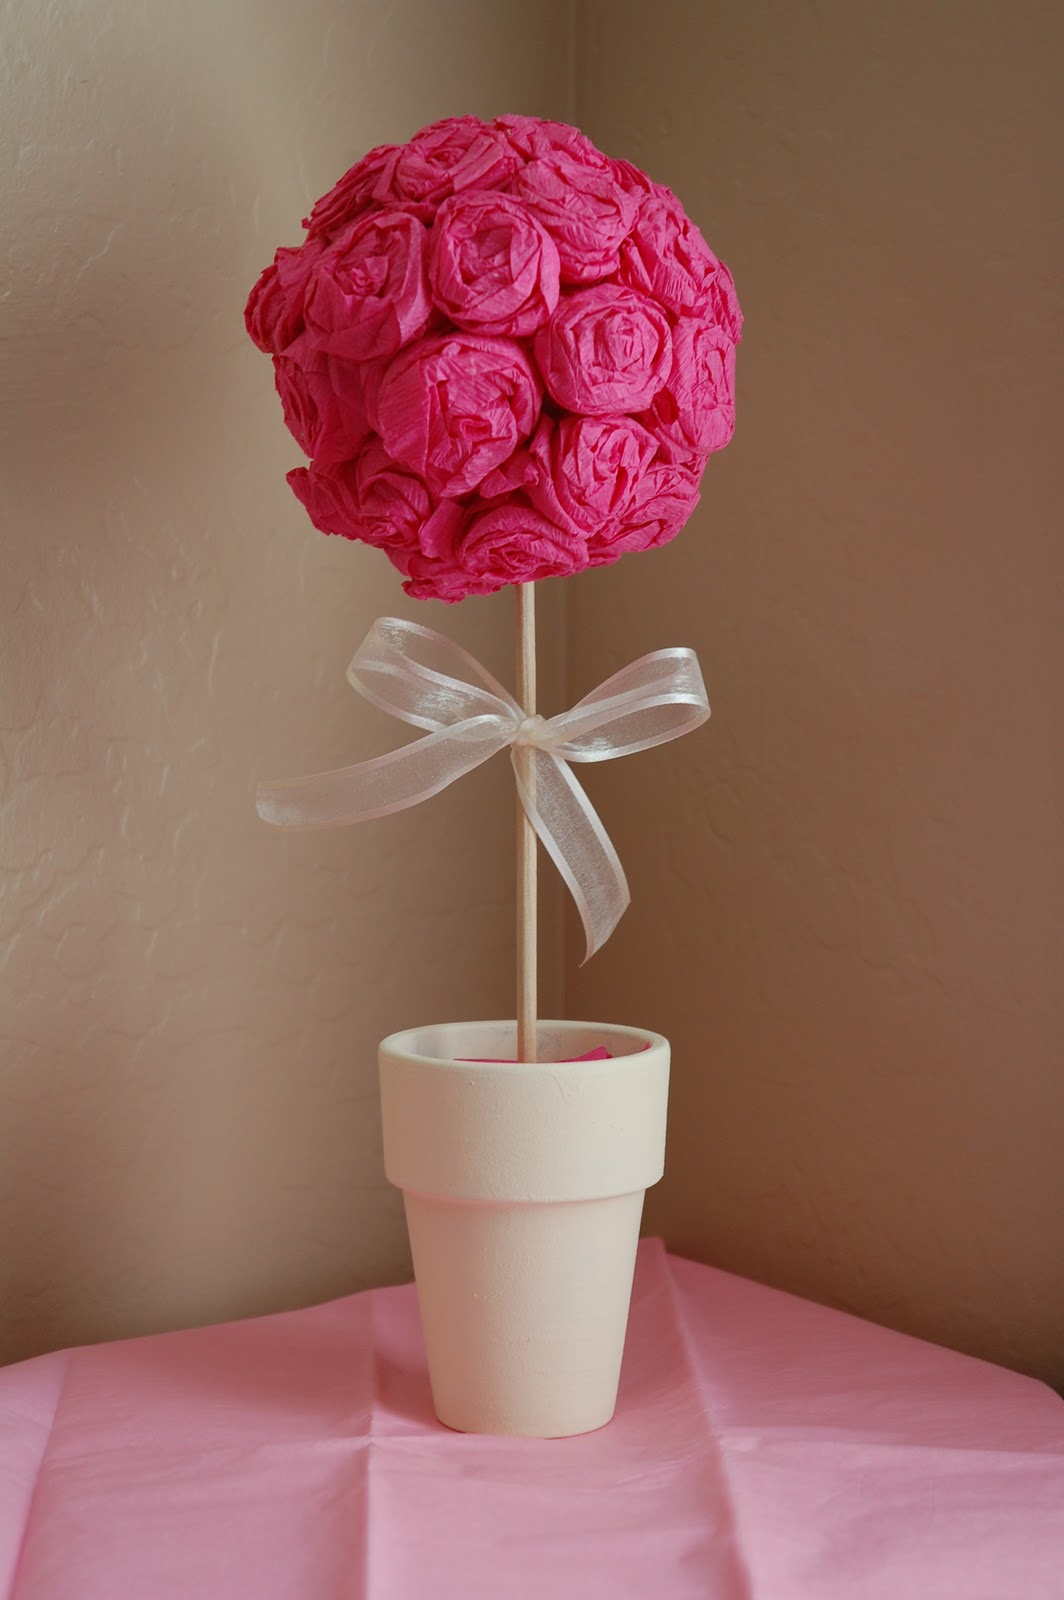 Knocking it off how to crepe paper rose pomander ball